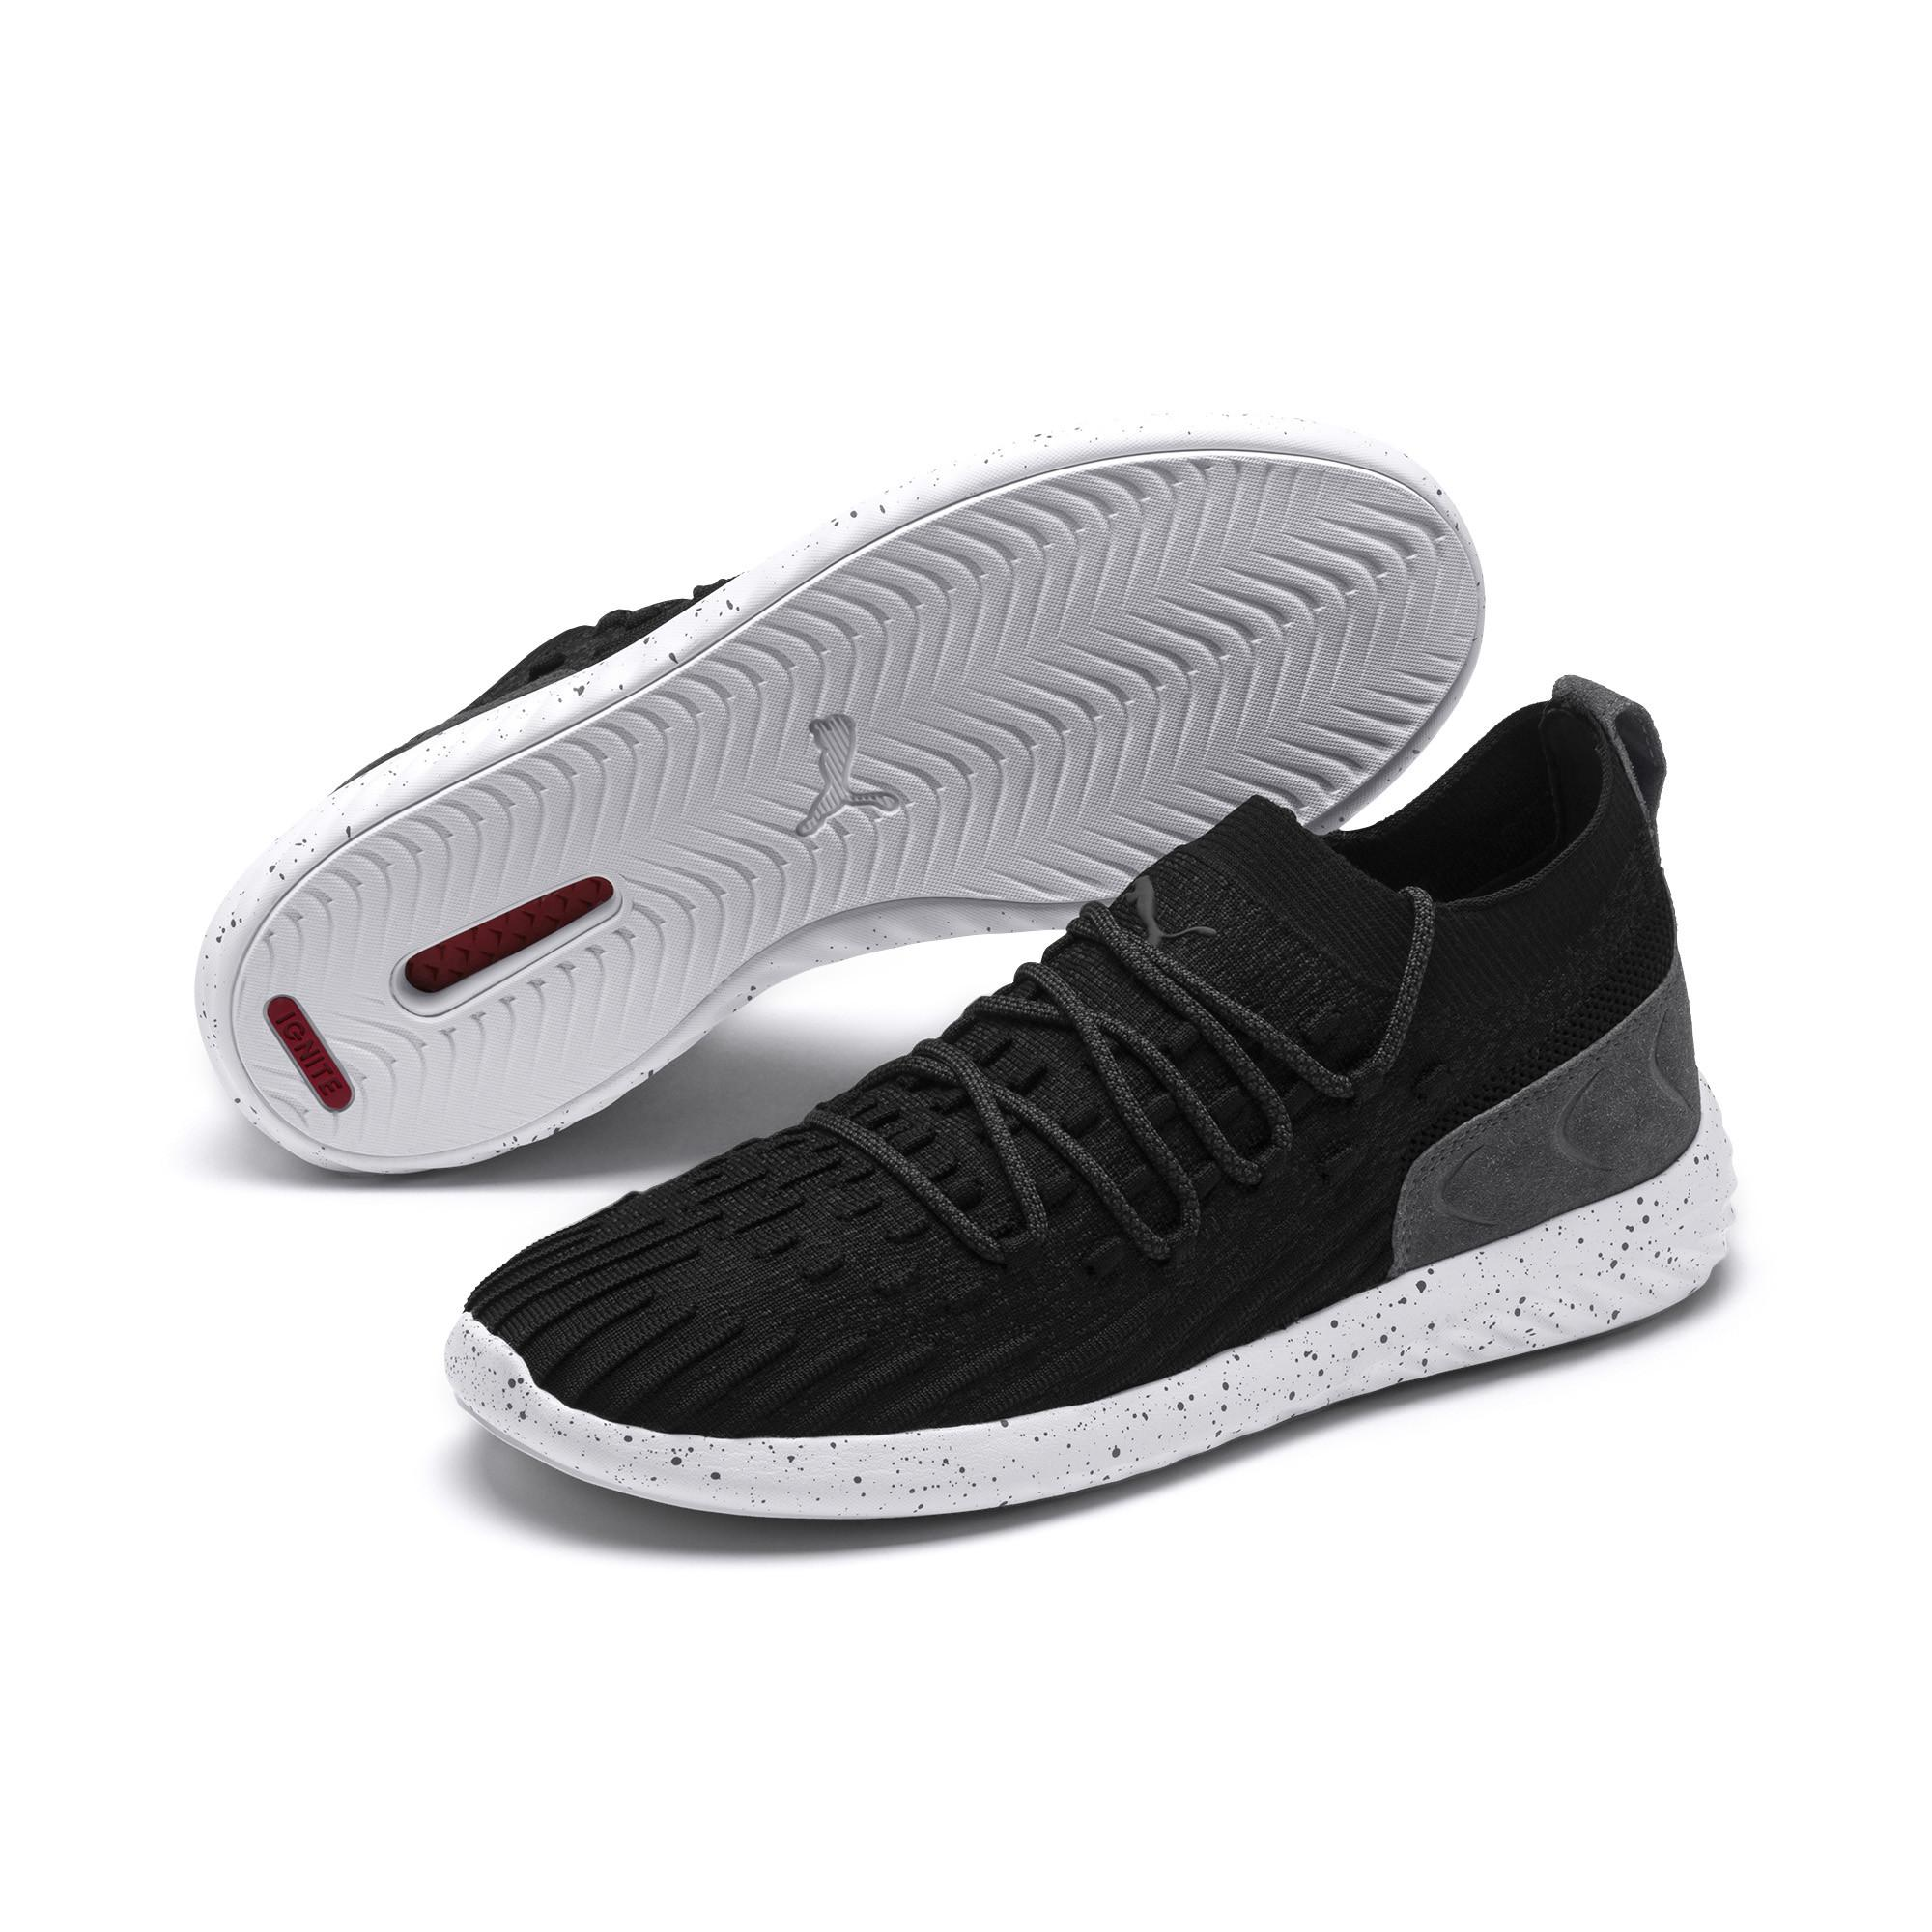 Cheap Puma Motorsport Shoes : Anthracite Puma White BMW MMS